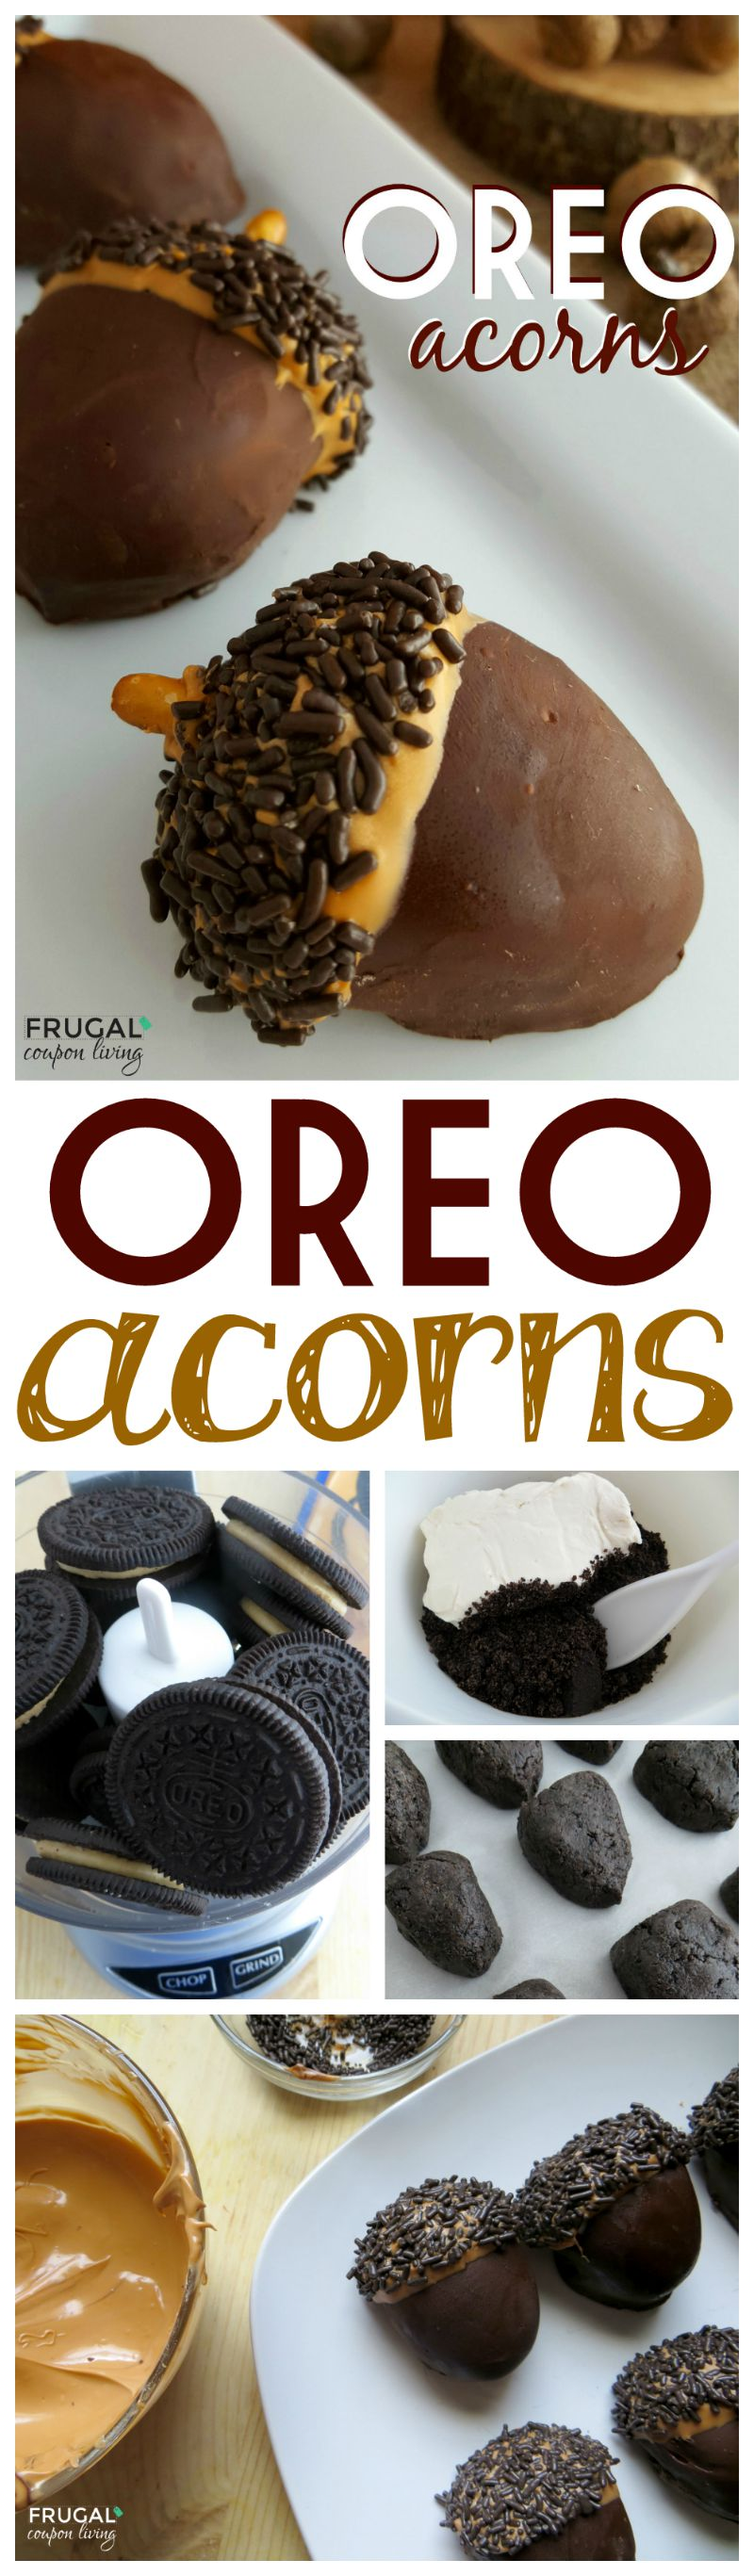 Oreo-acorns-Collage-long-frrugal-coupon-living-800